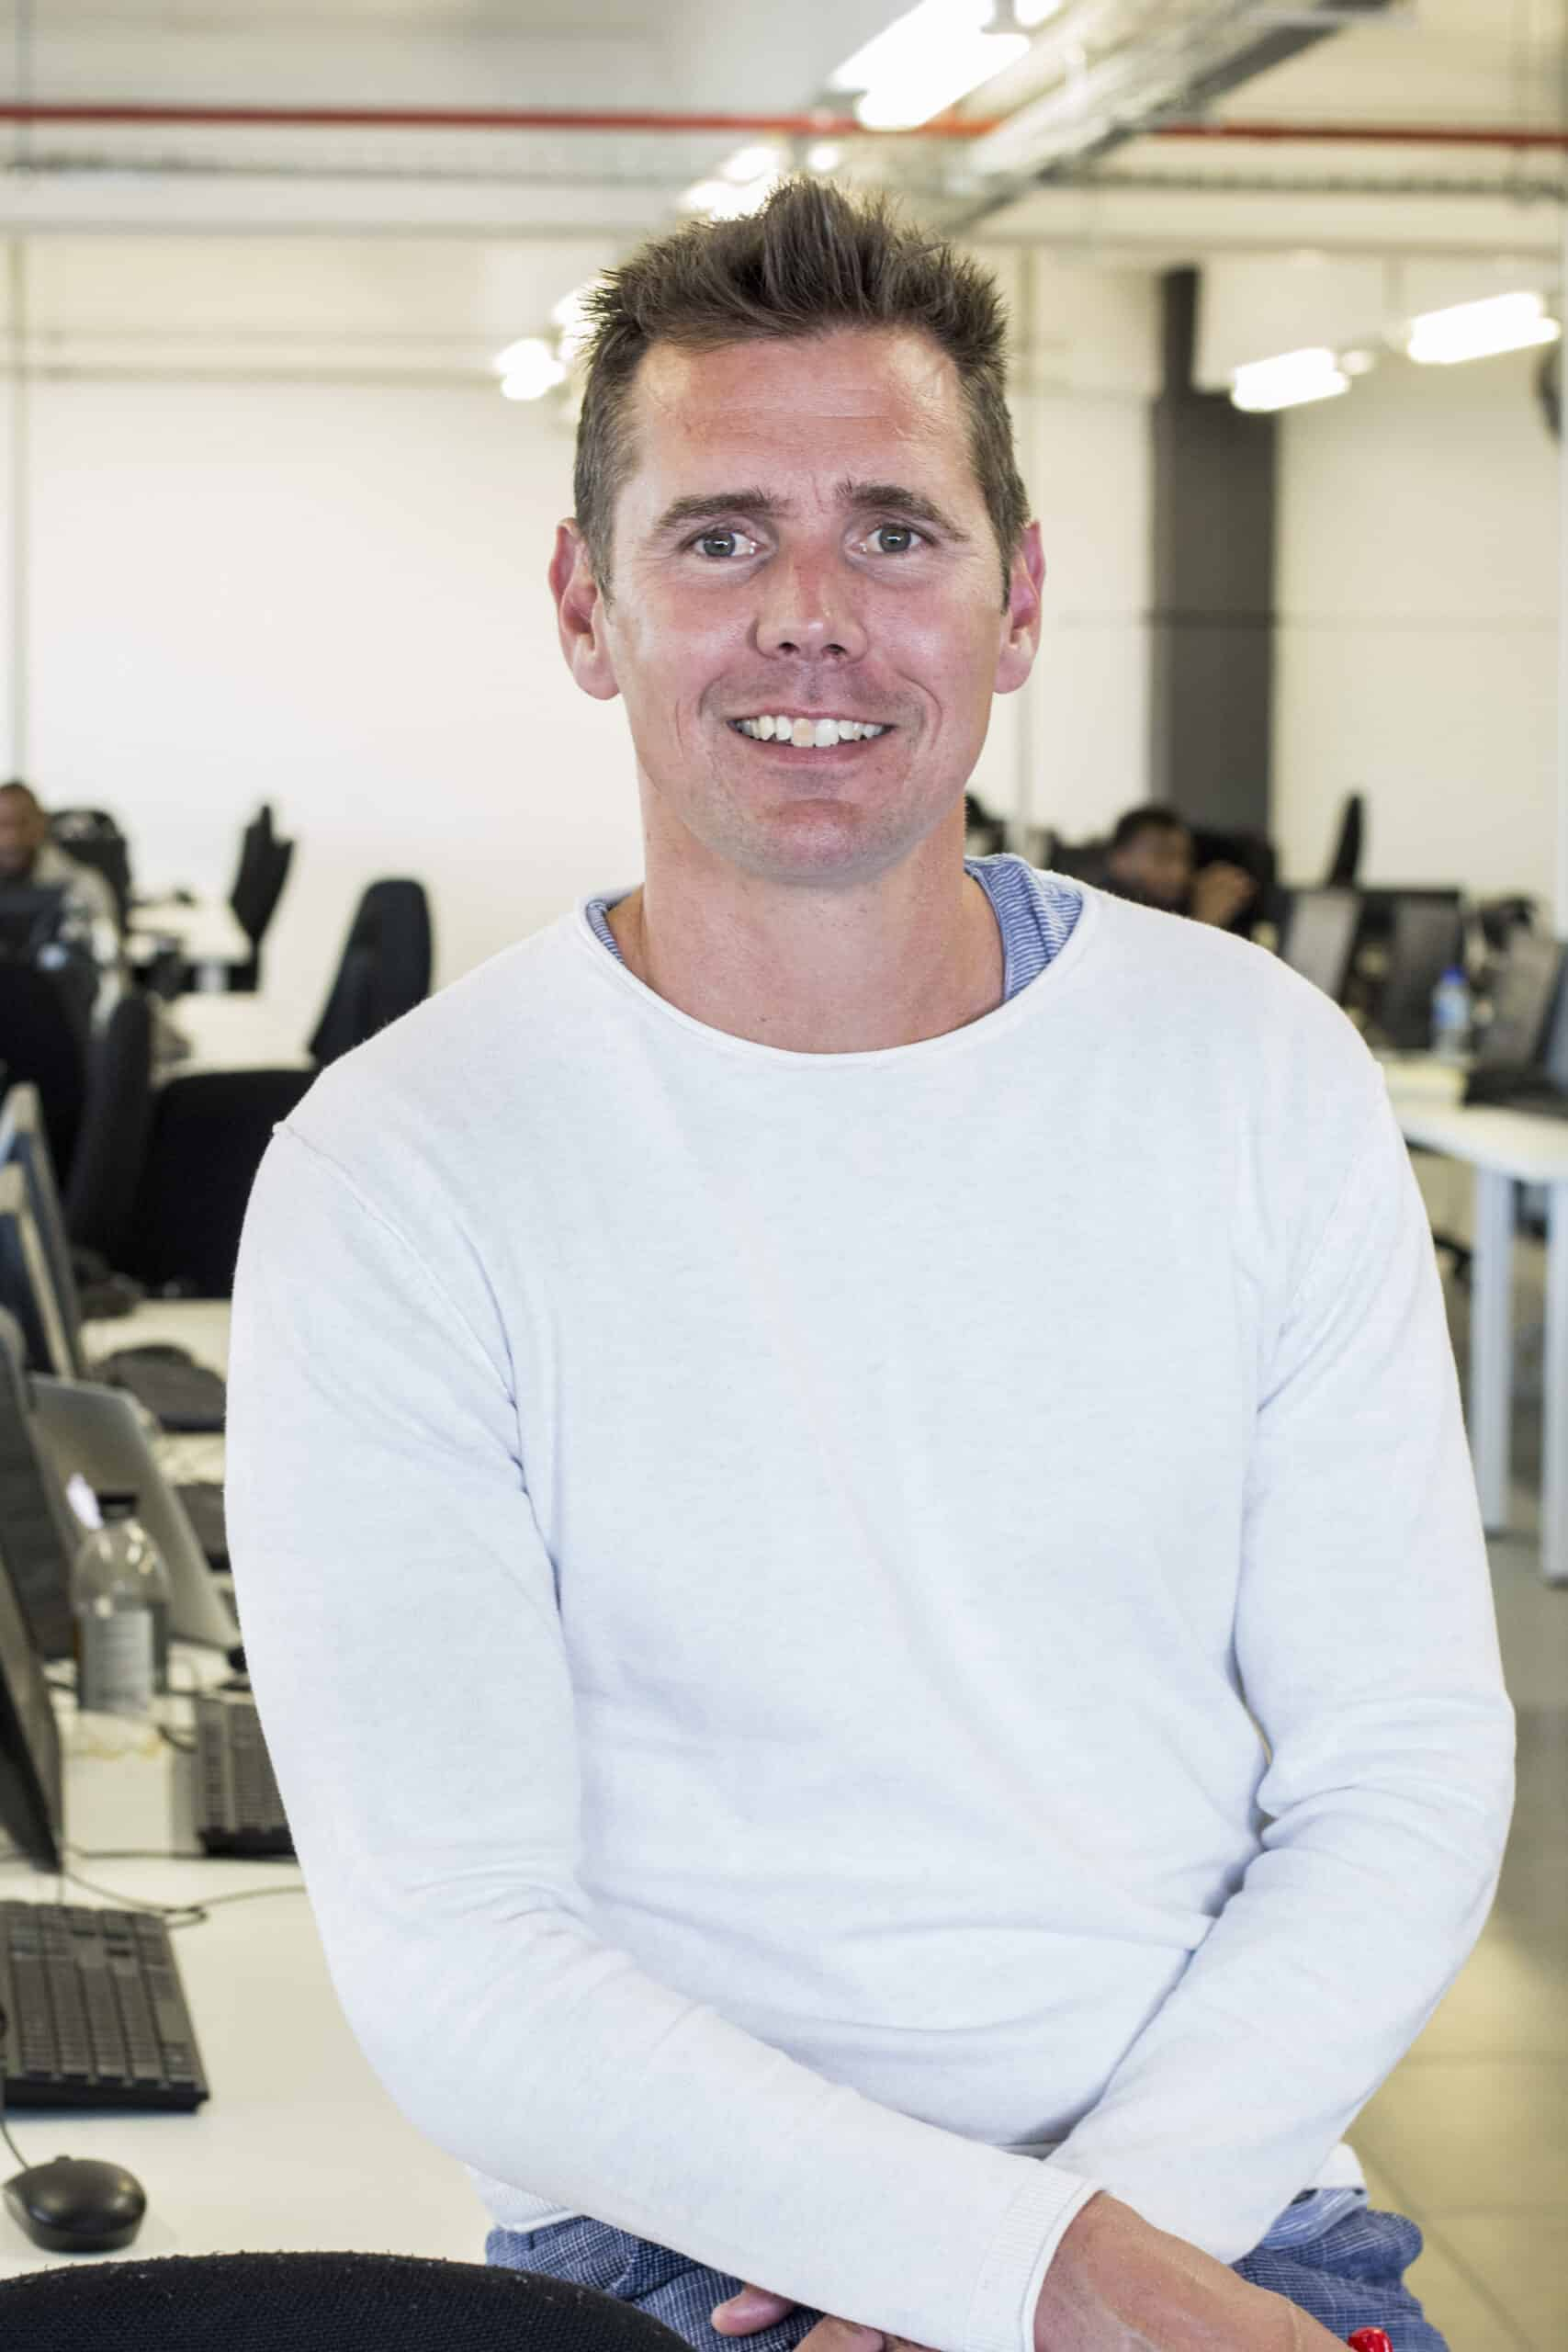 EXPLORE founder and CEO Shaun Dippnall